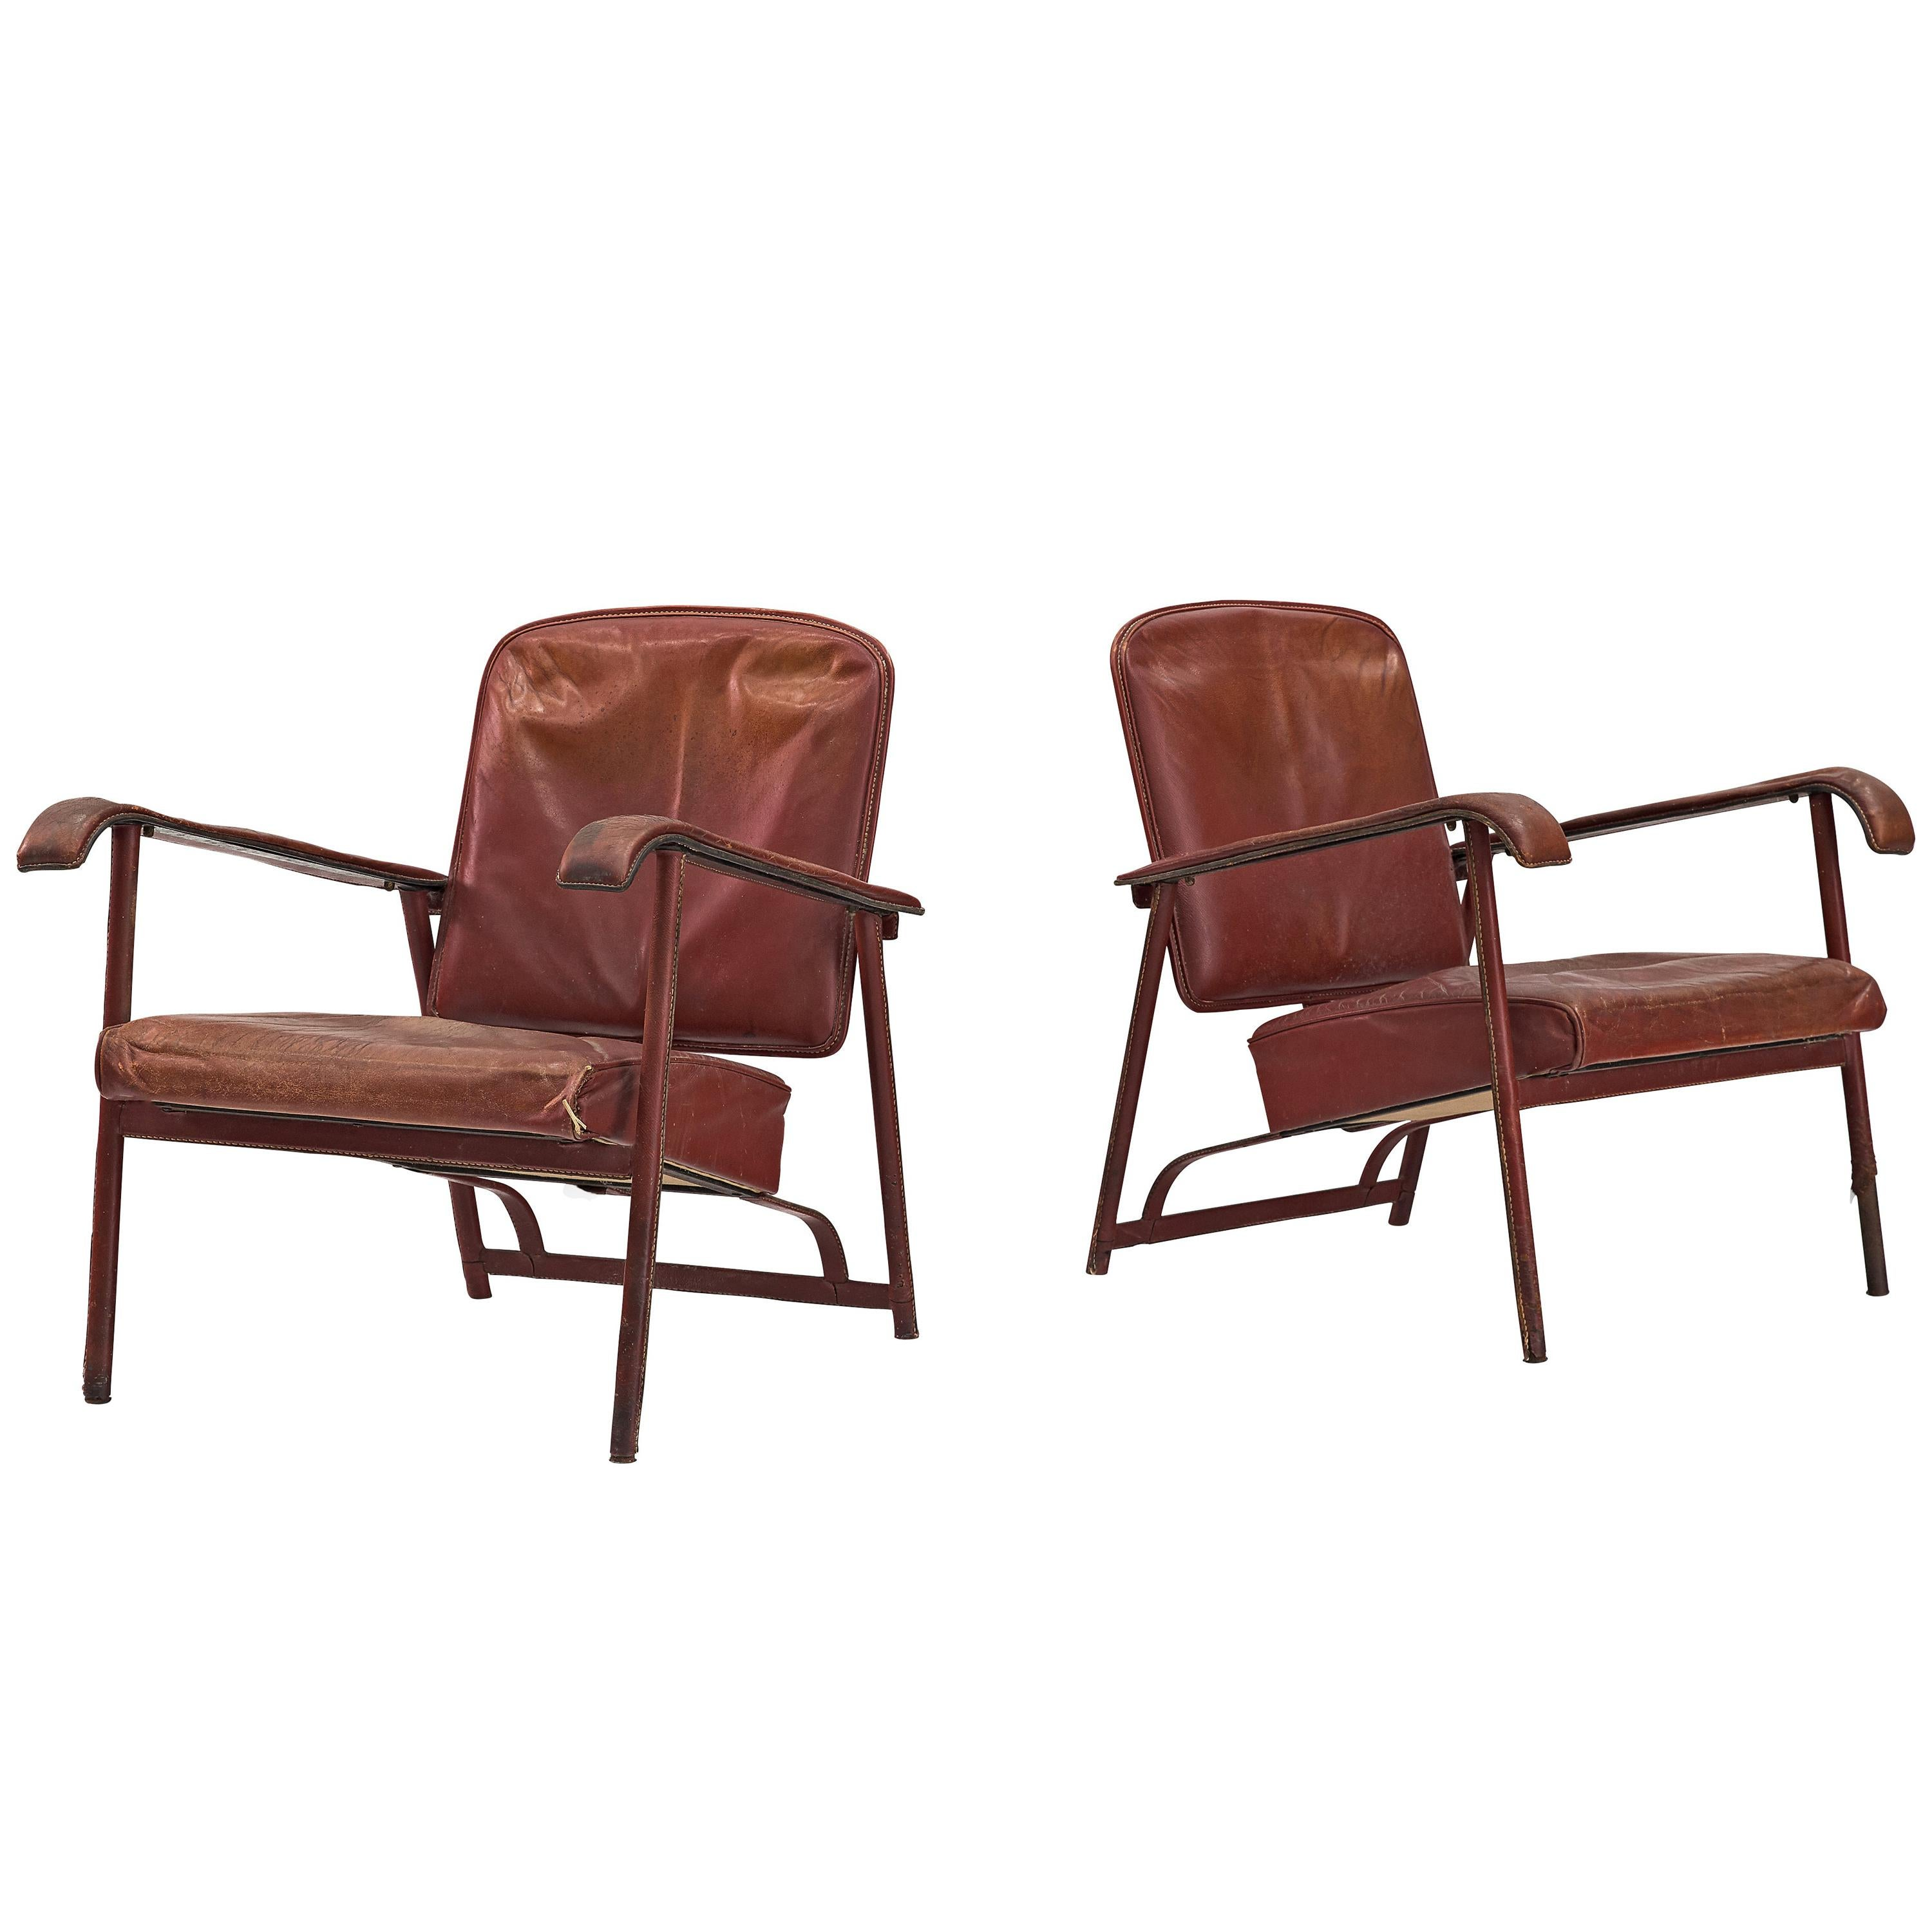 Pair of Lounge Chairs in Patinated Burgundy Leather by Jacques Adnet